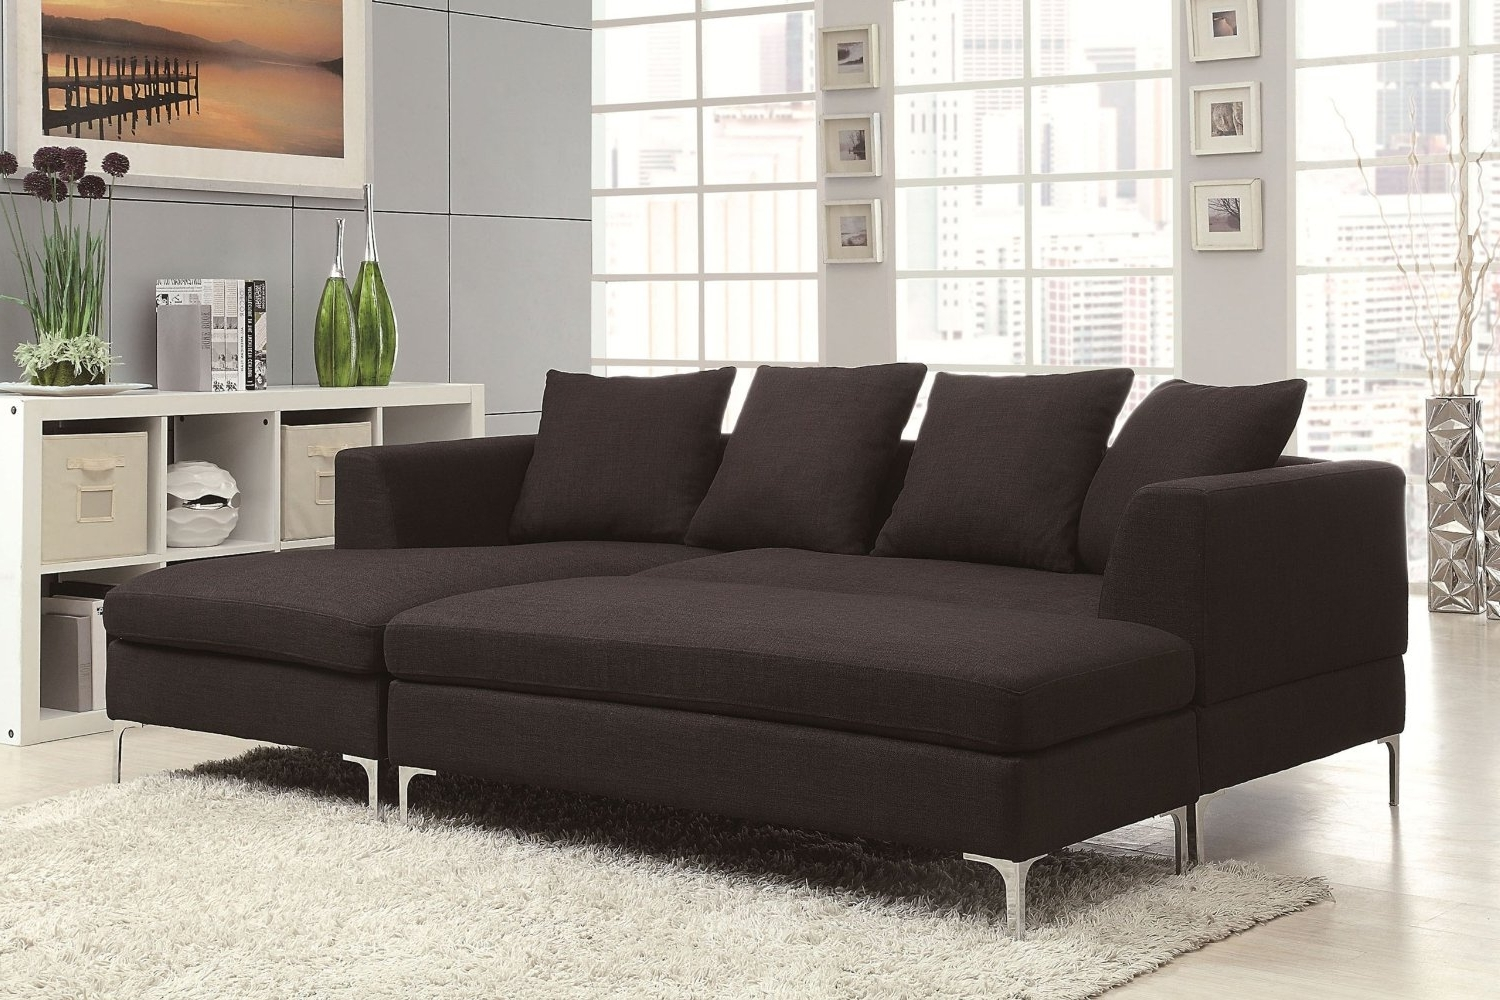 Famous Sectional Chaise Sofa – Home And Textiles Pertaining To Leather Sectionals With Chaise Lounge (View 4 of 15)